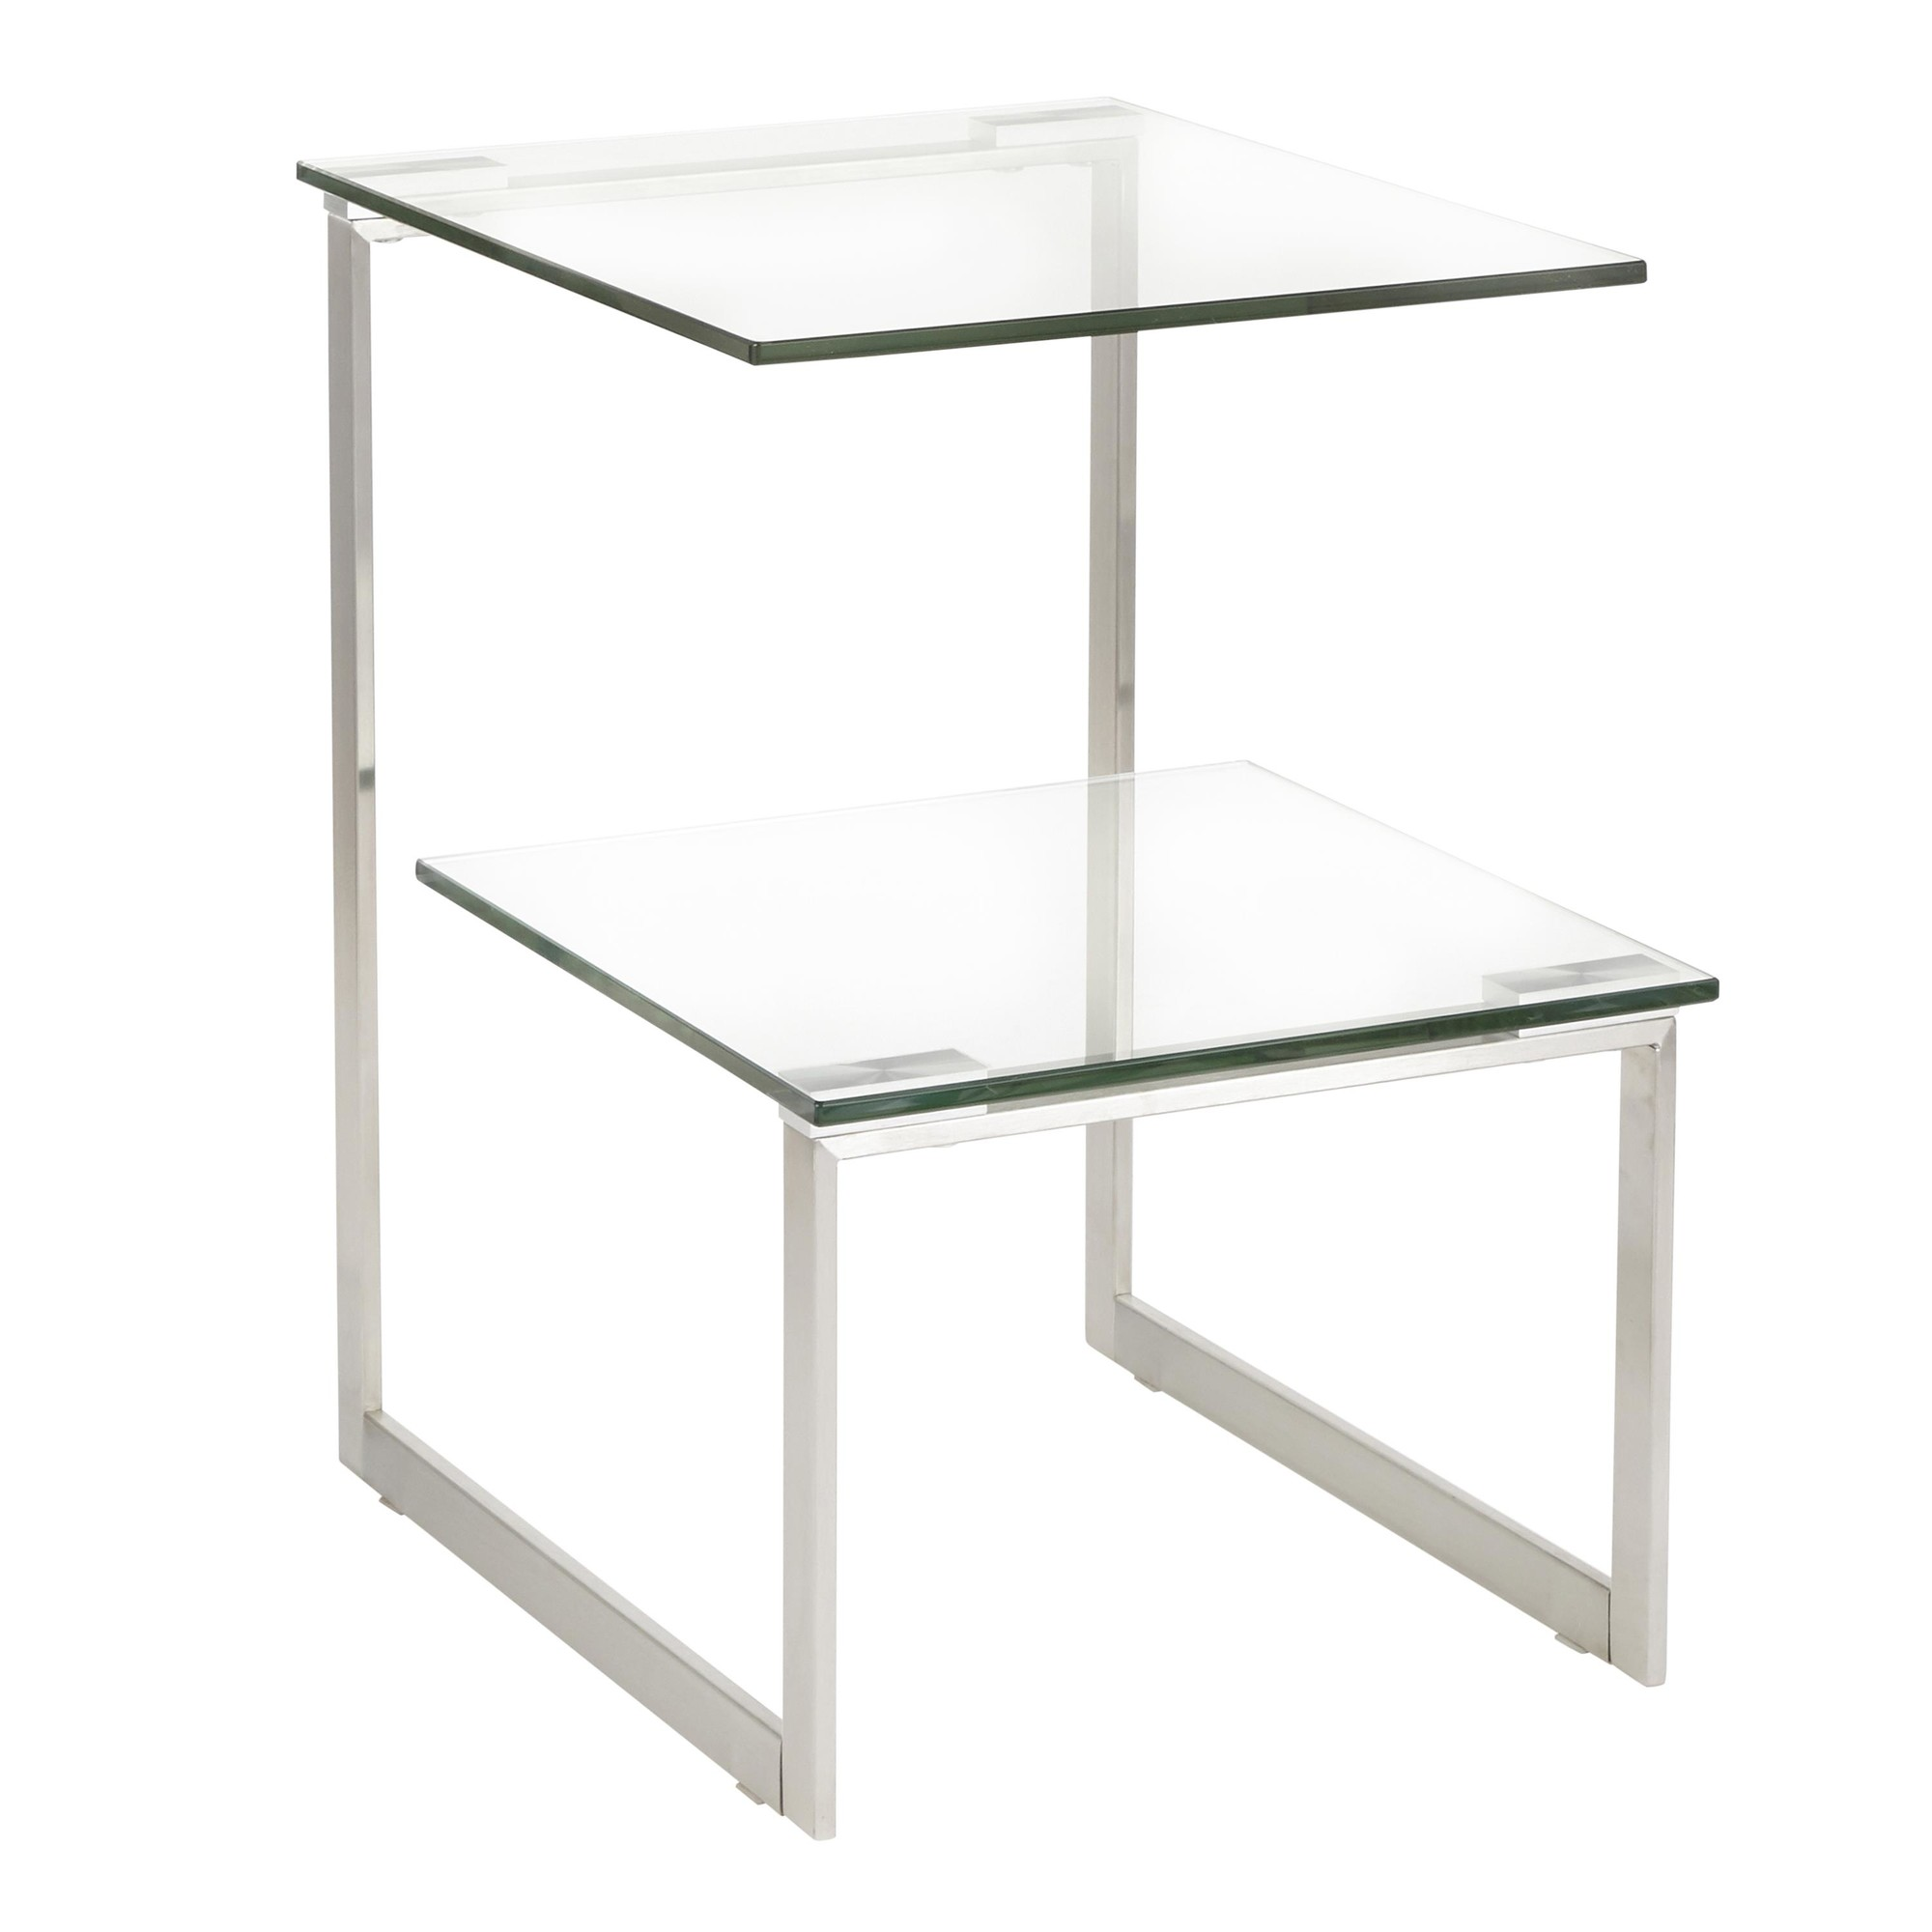 6g Side Table Lumisource Stylish Decor At Affordable Prices